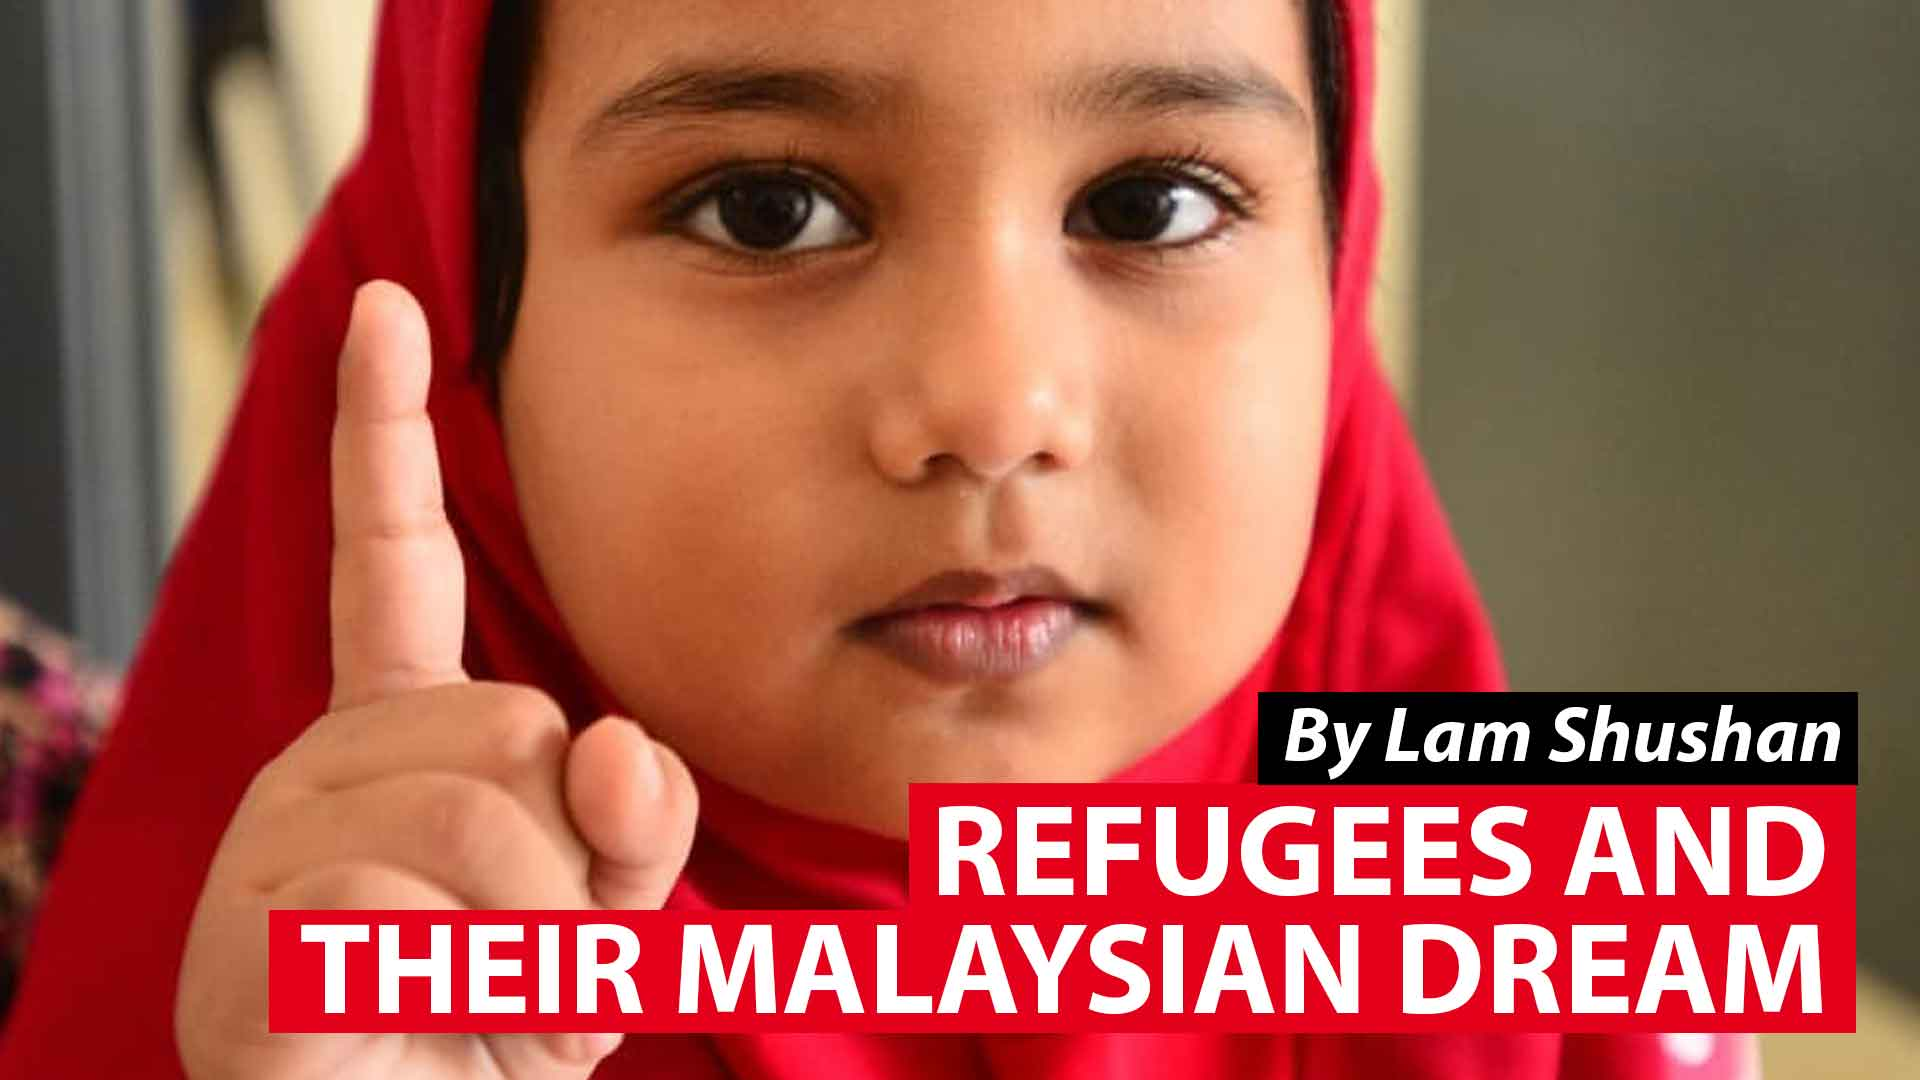 Refugees and their Malaysian dream